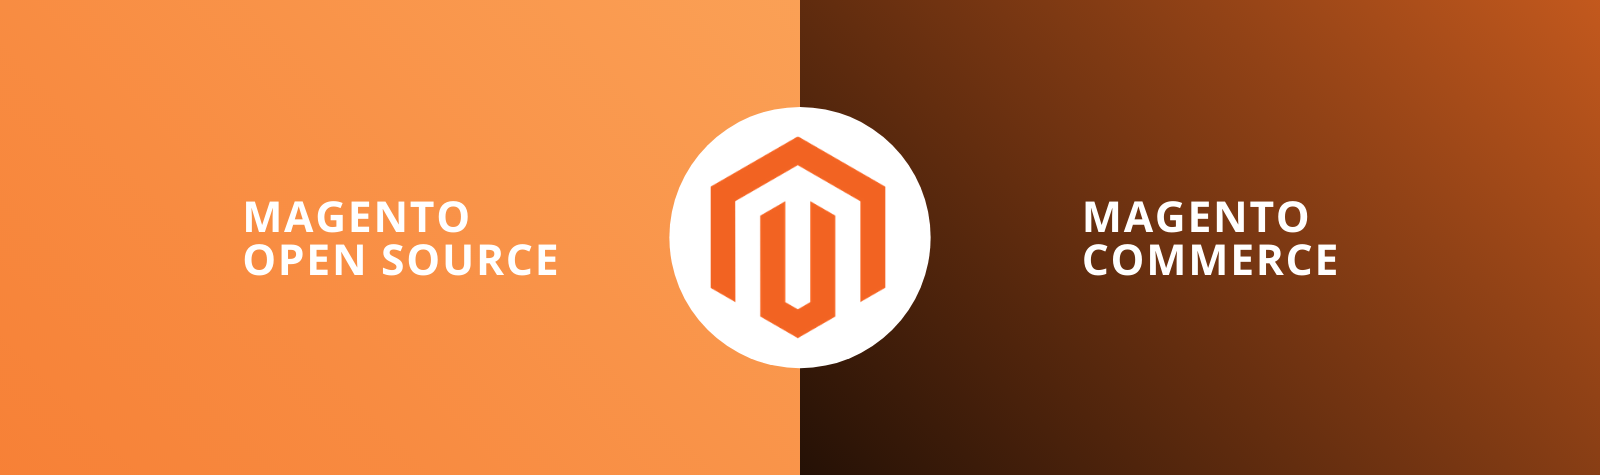 Blog Header: What are the different versions of Magento?